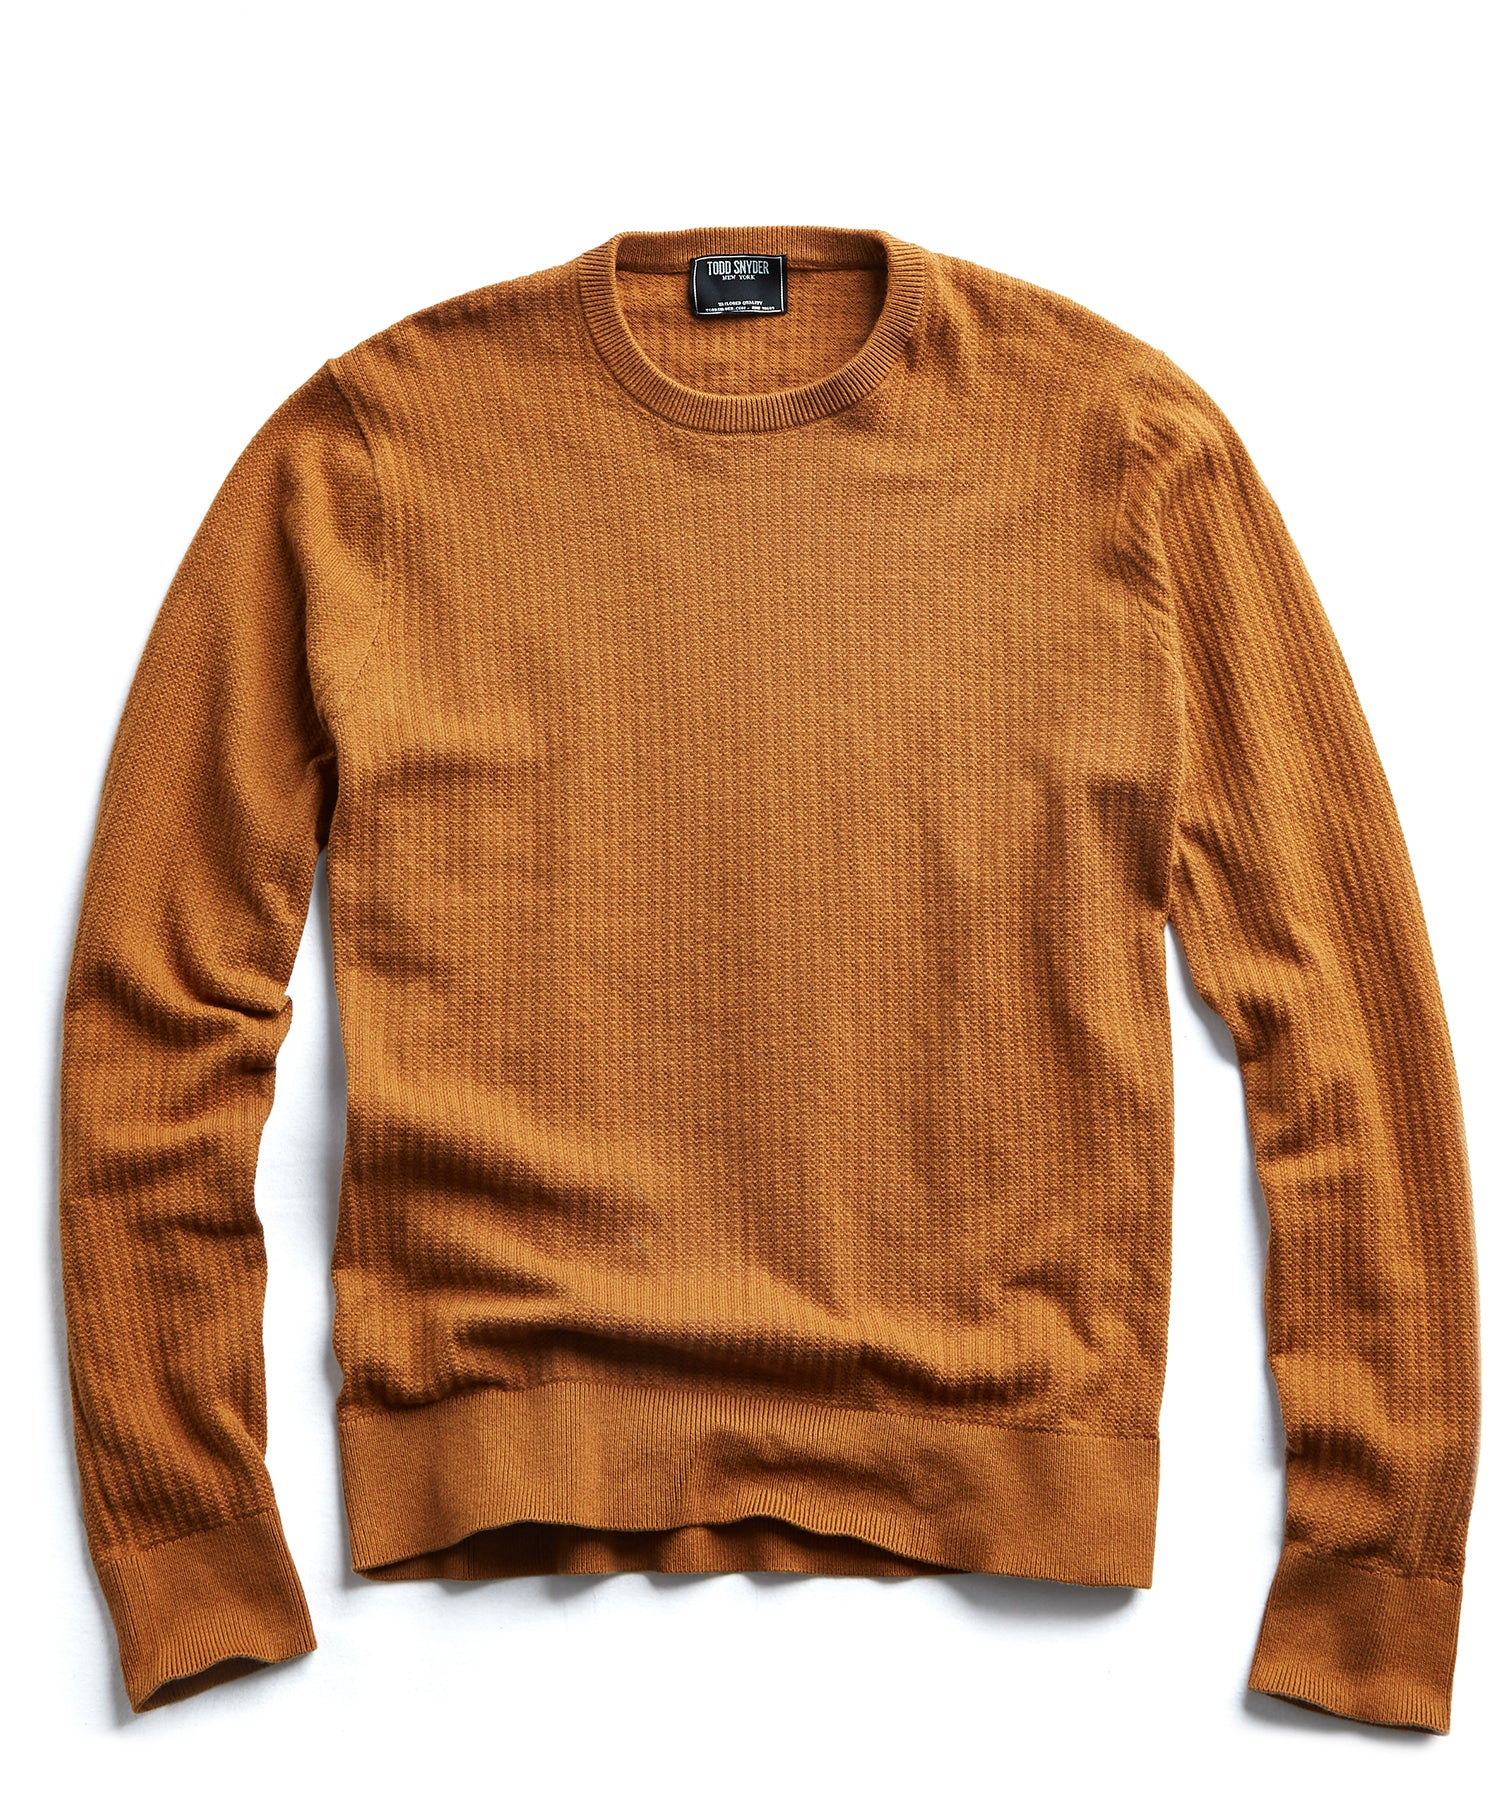 Cotton Crew Neck in Mustard